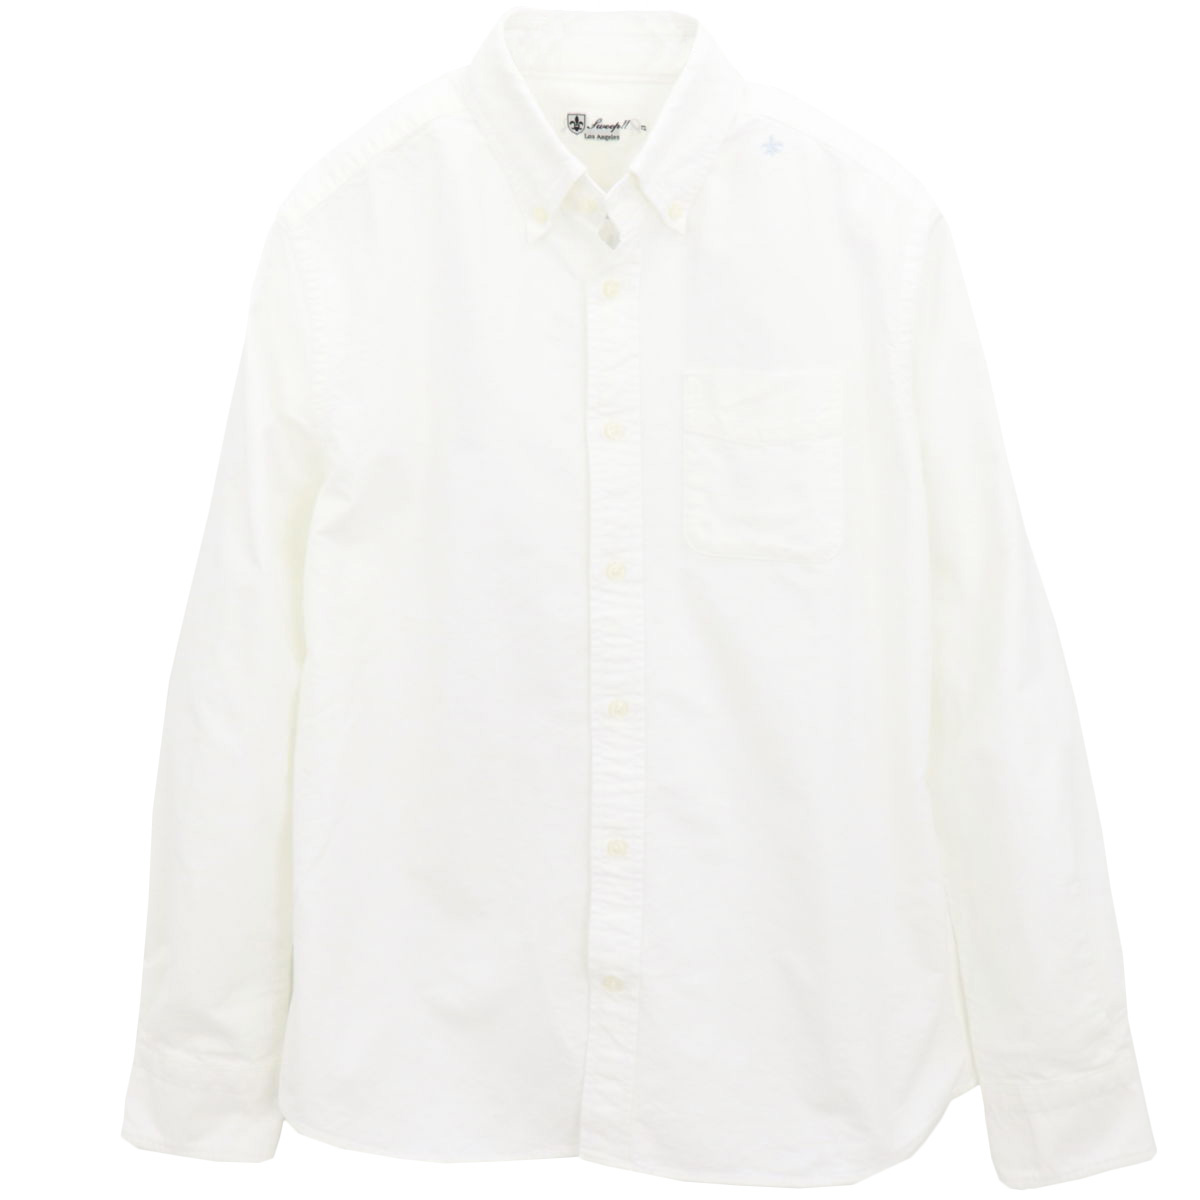 OXFORD BACK-PRINT(WHITE)